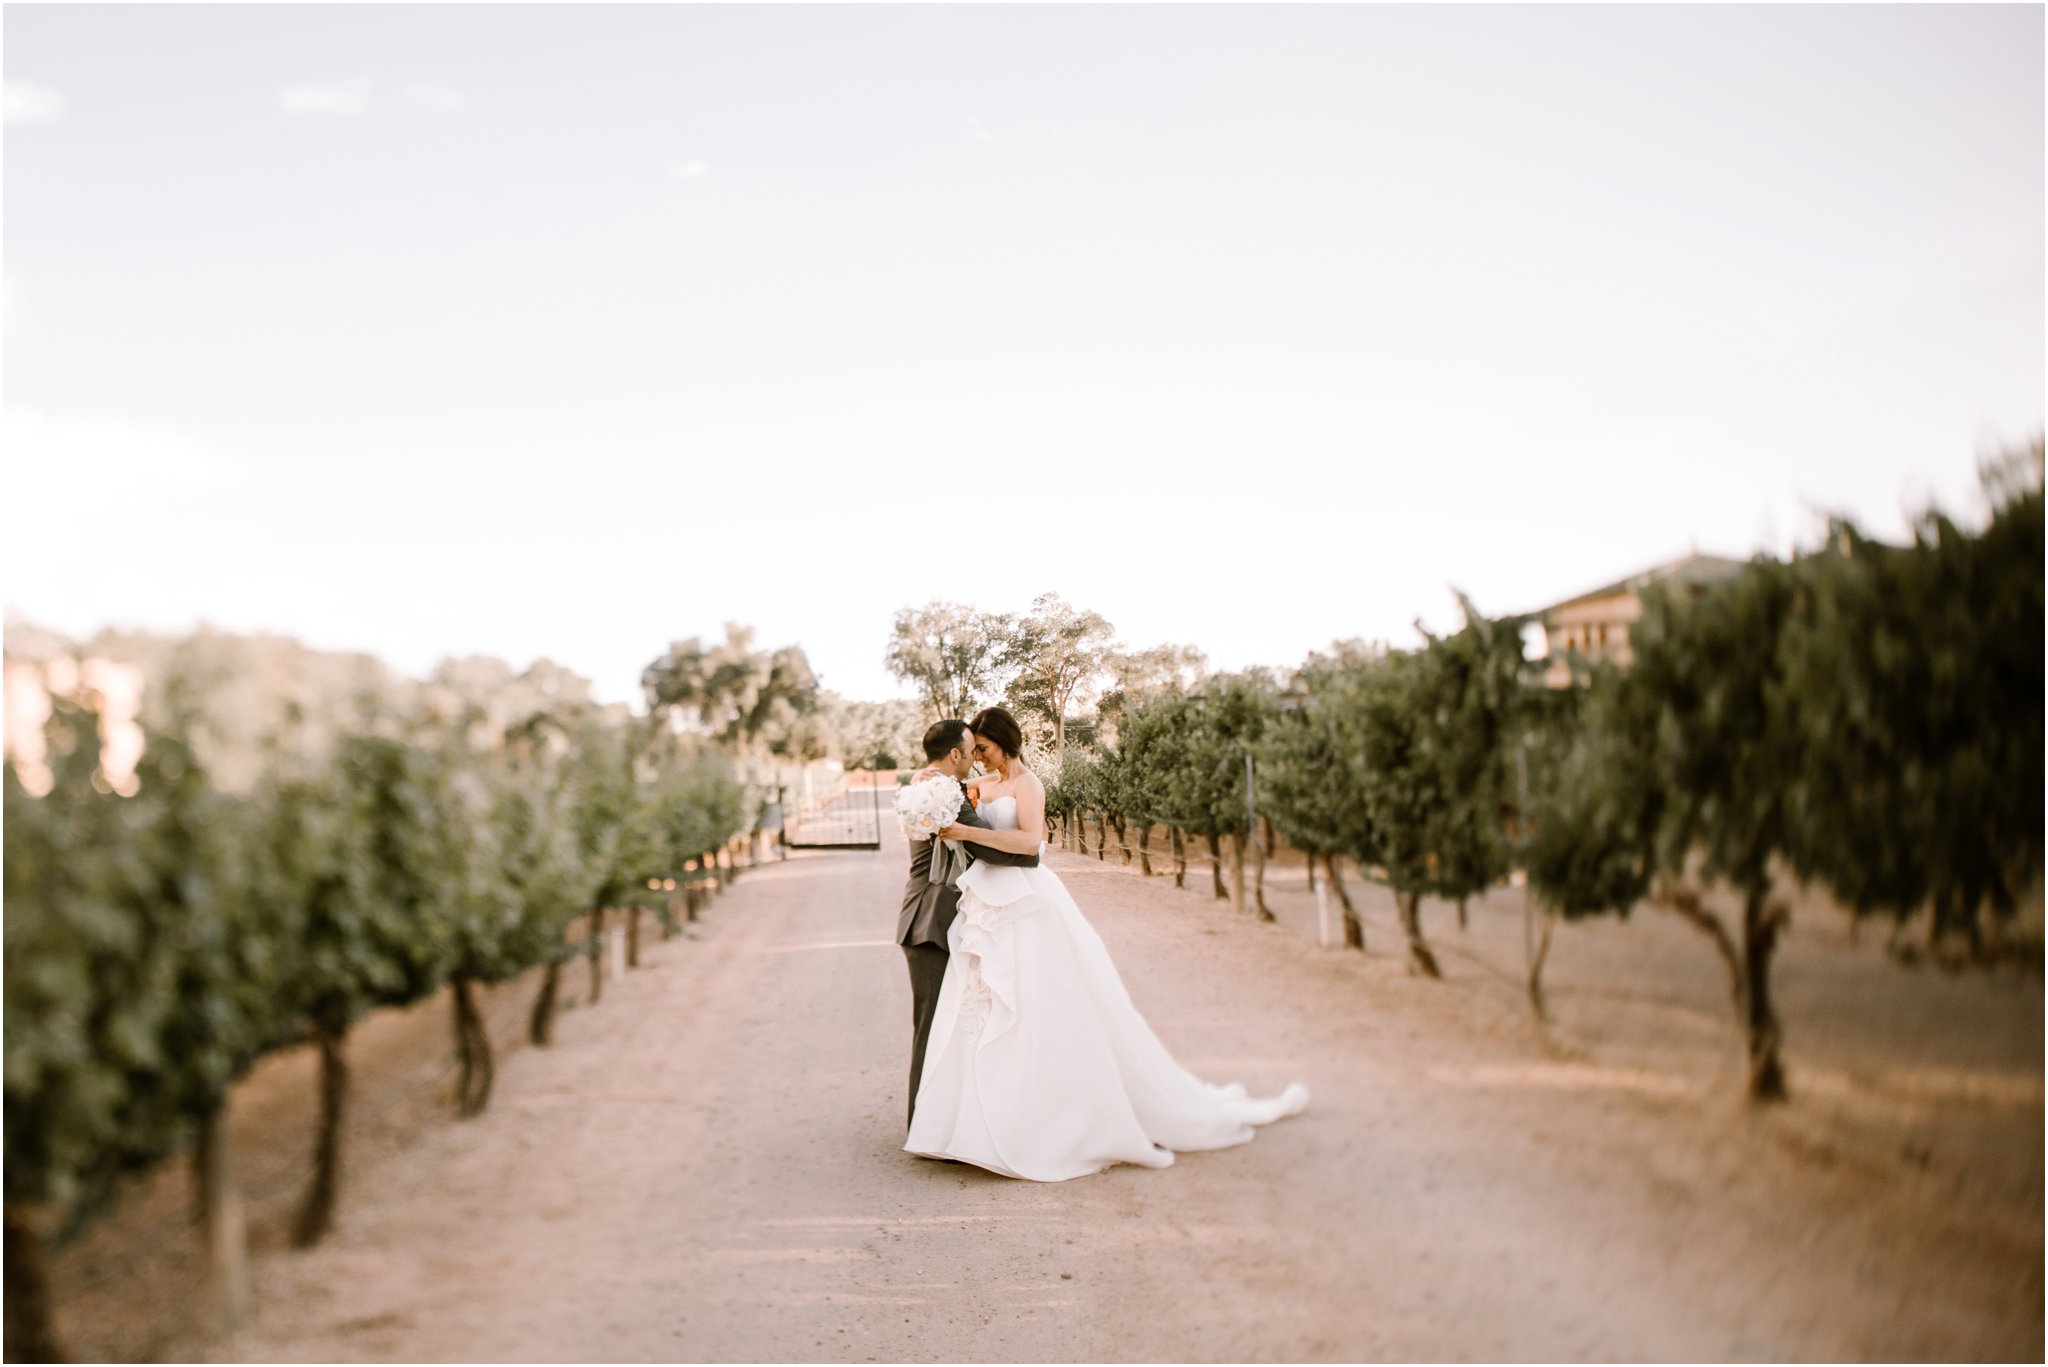 0217Casa Rodena Winery Wedding, Inn and Spa at Loretto wedding, Santa Fe wedding photographers, blue rose photography